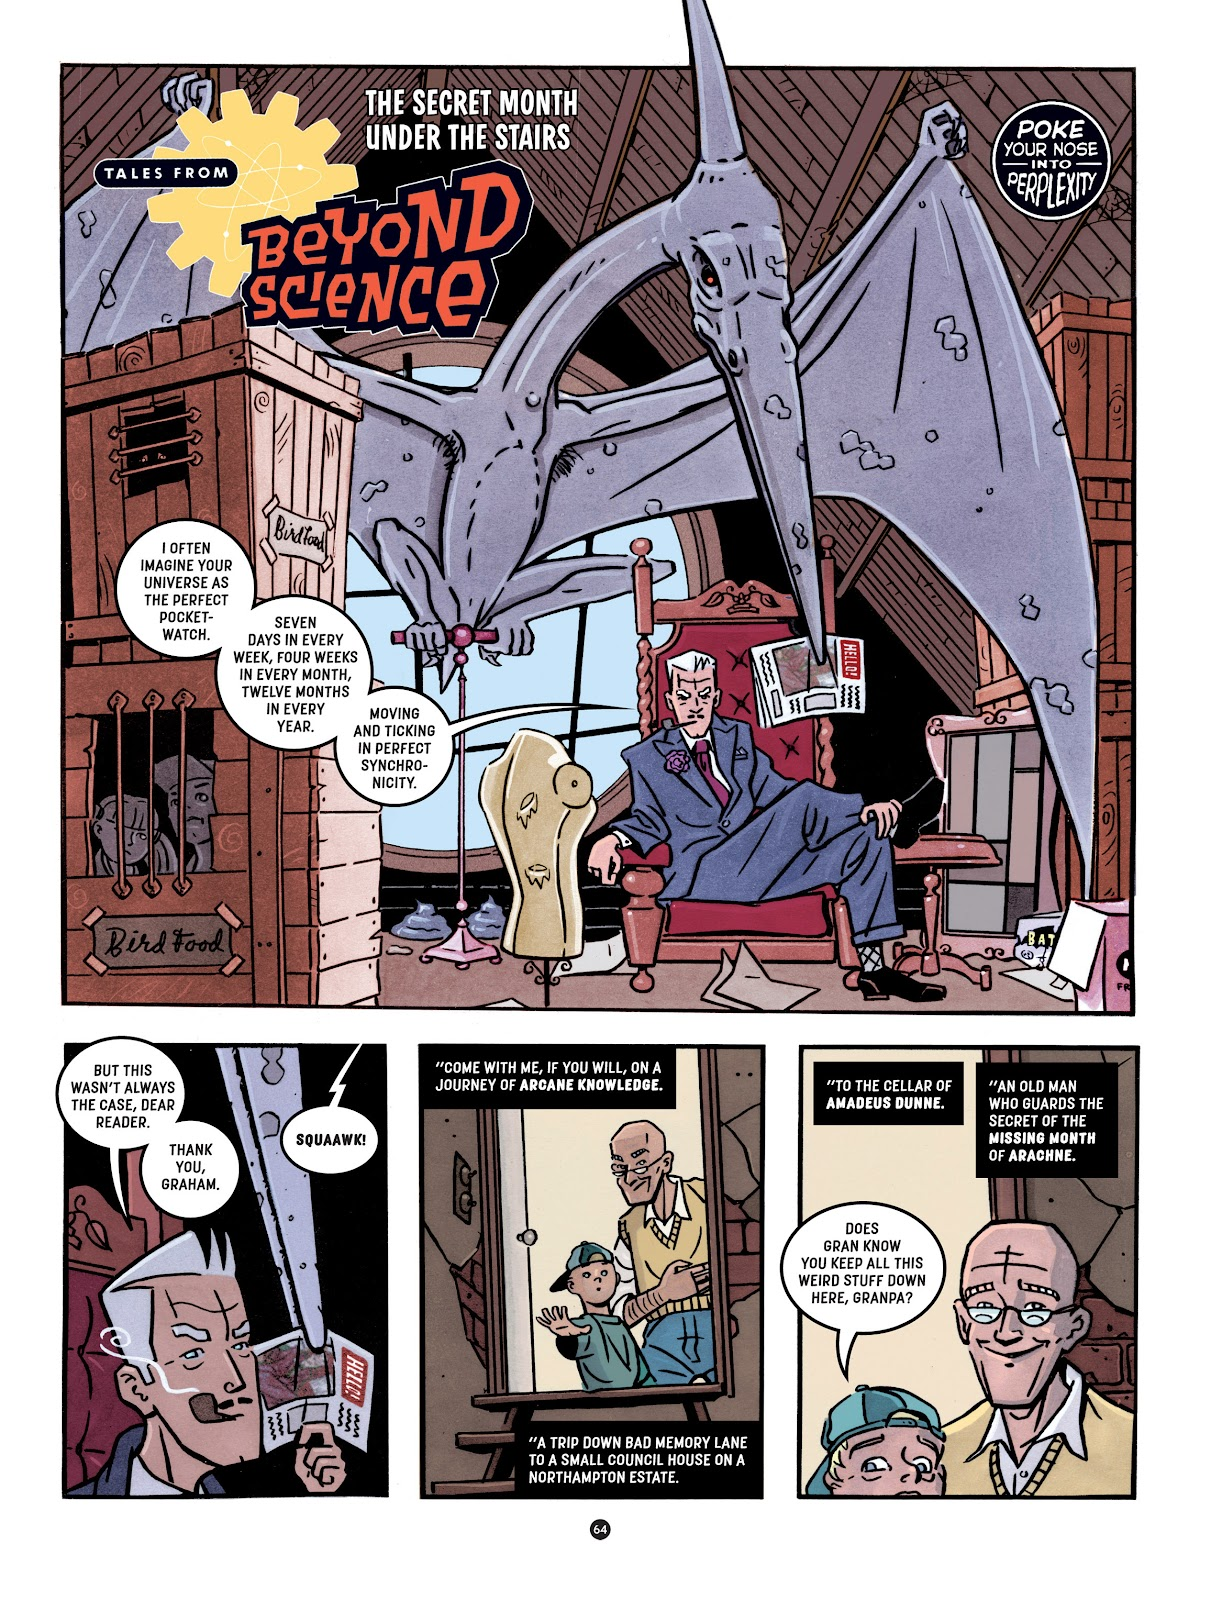 Read online Tales from Beyond Science comic -  Issue # TPB - 65